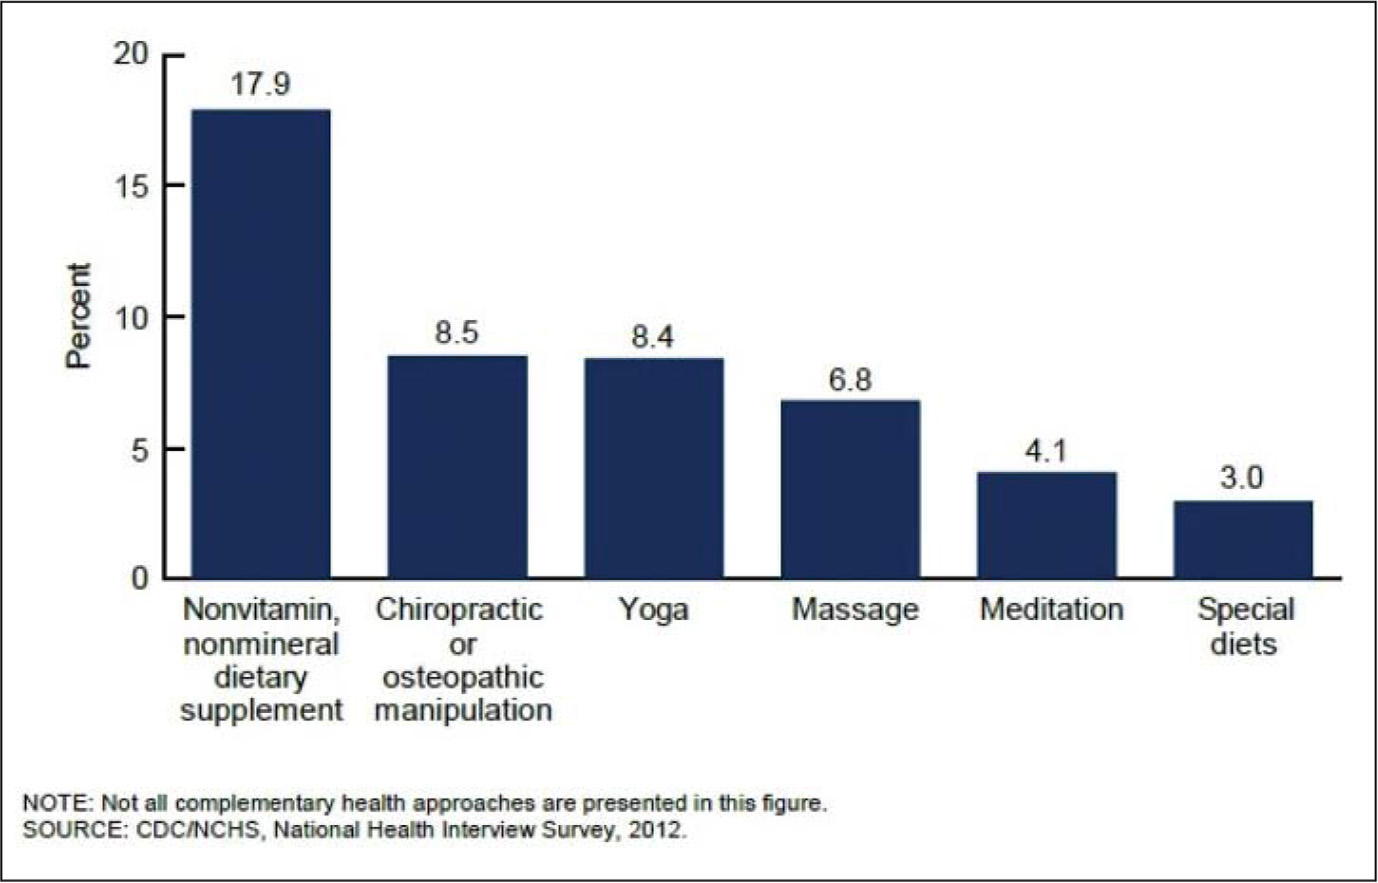 Percentage of adults 50 and older reporting use of complementary health approaches, 2012. Reprinted from Peregoy, J.A., Clarke, T.C., Jones, L.I., Stussman, B.J., & Nahin, R.L. (2014). Regional variation in use of complementary health approaches by U.S. adults (NCHS data brief, no. 146). Hyattsville, MD: National Center for Health Statistics.